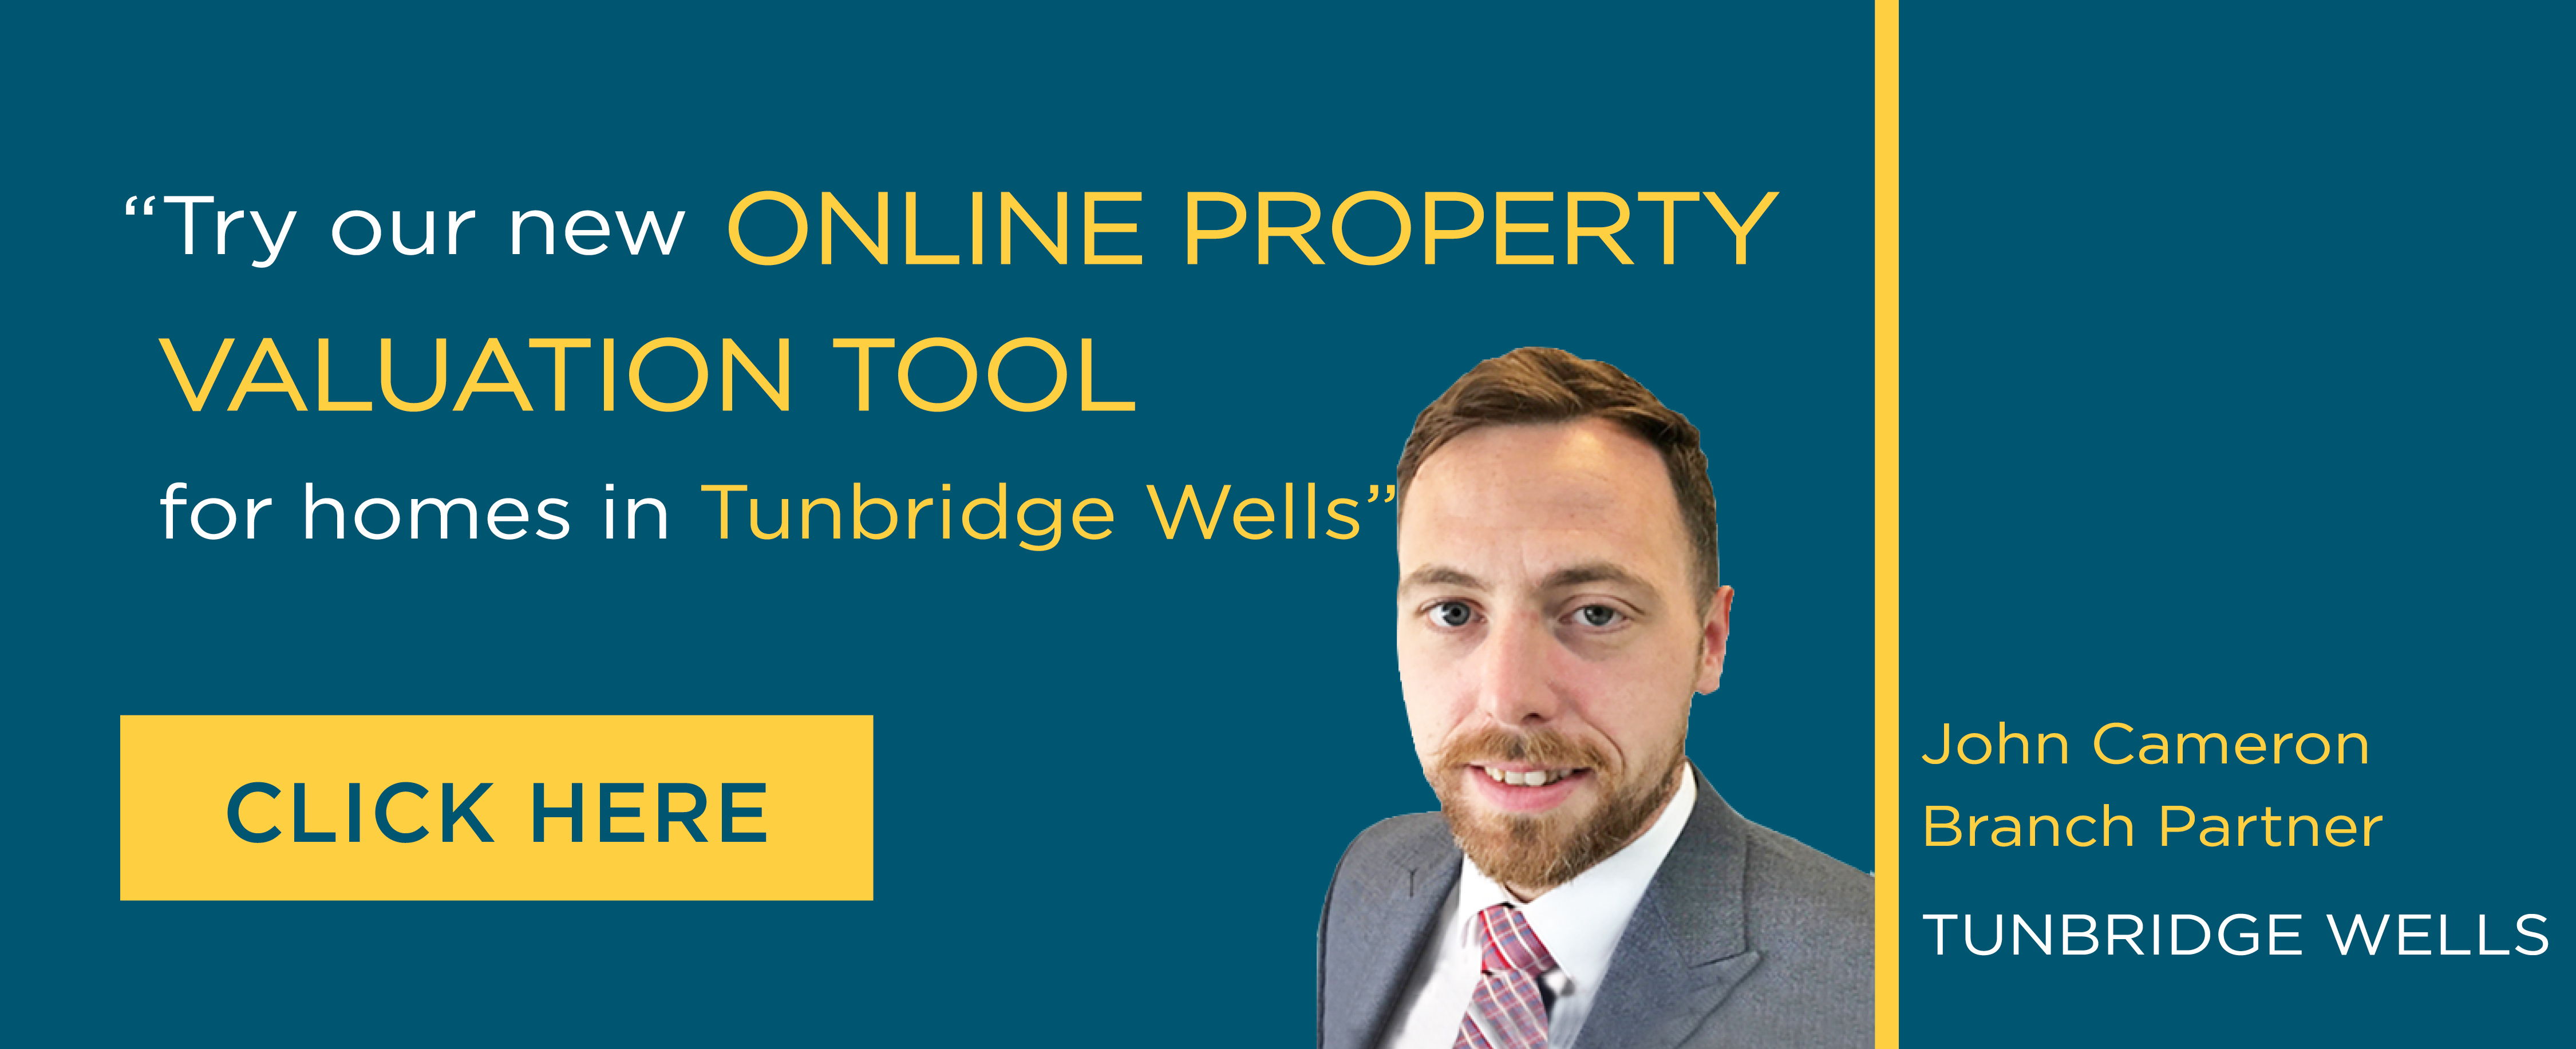 Online Valuation Tool website banner Turnbridge Wells